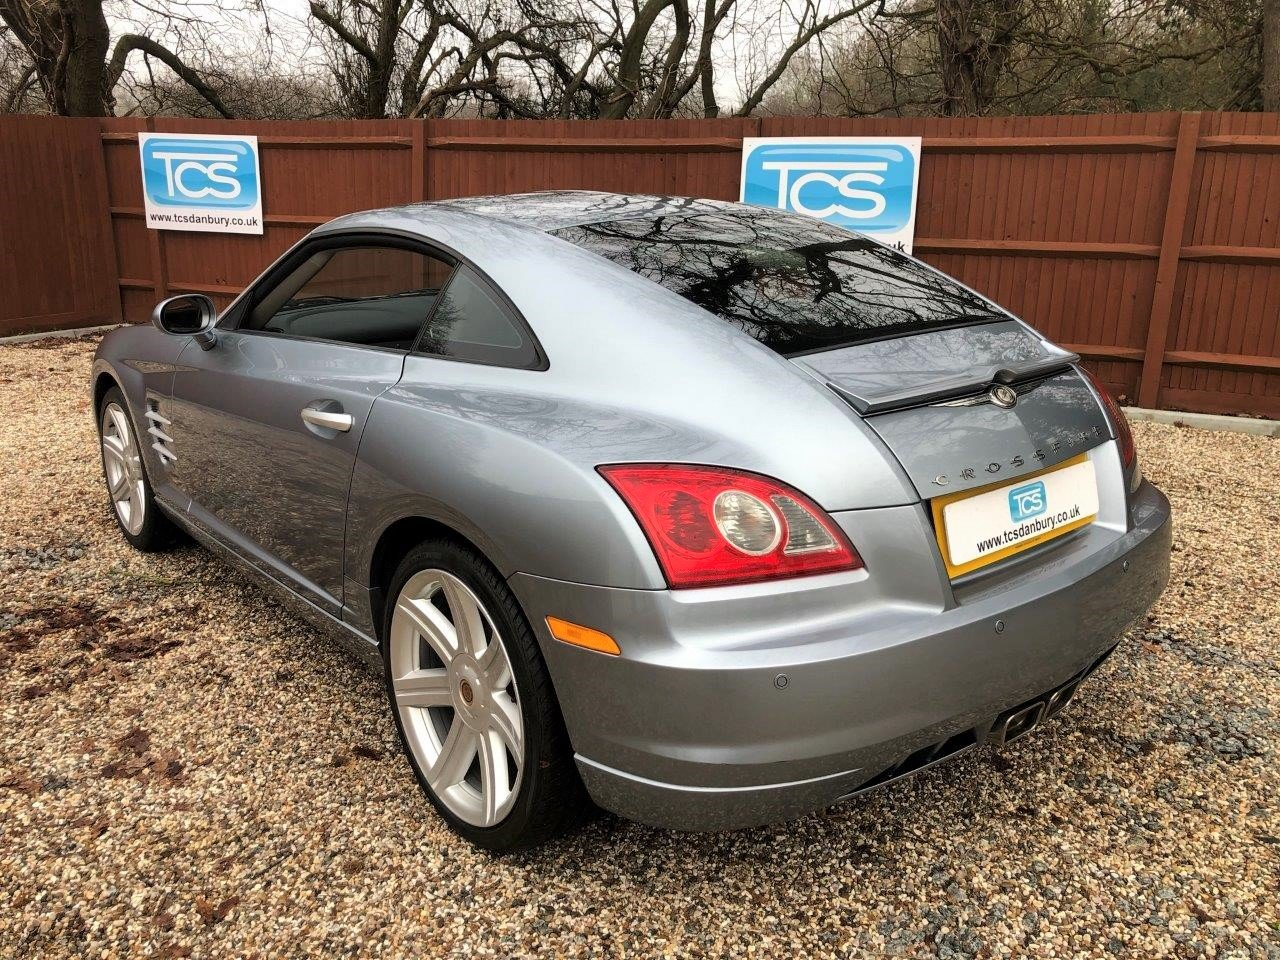 2003 Chrysler Crossfire 3.2i V6 Coupe 5-Speed Automatic SOLD (picture 2 of 12)